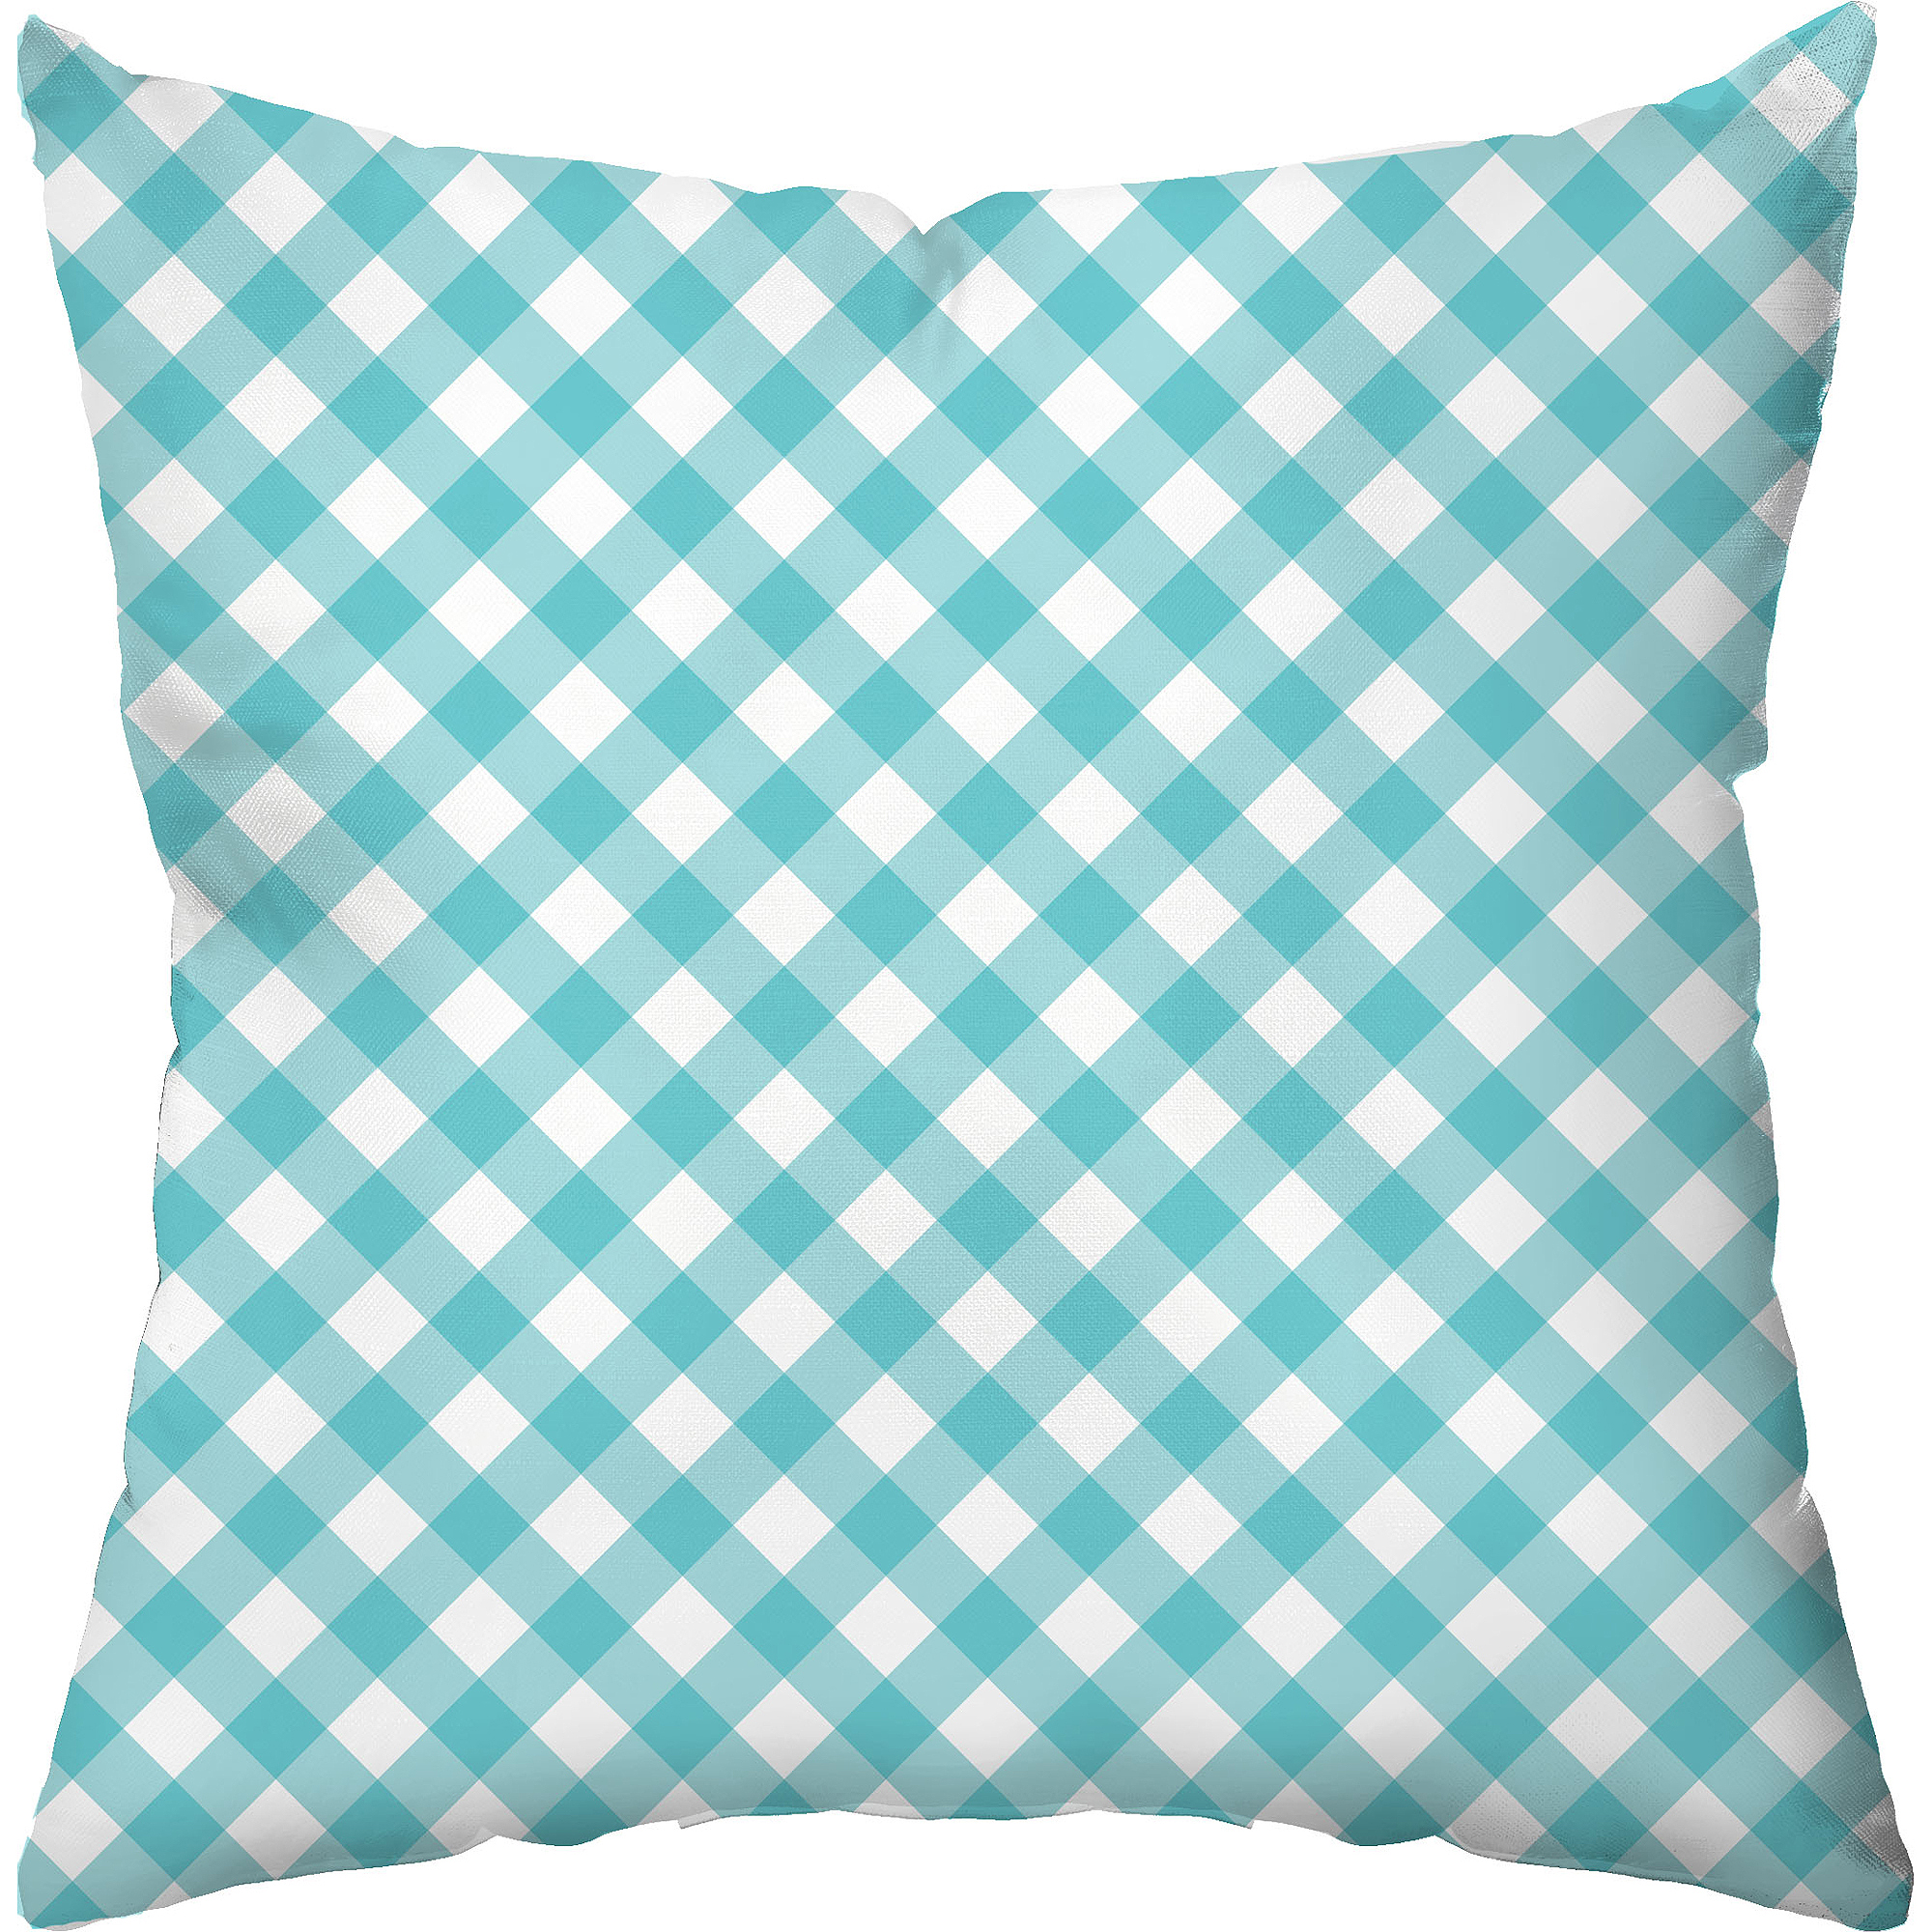 Checkerboard Lifestyle Gingham Sky Blue Throw Pillow, Blue